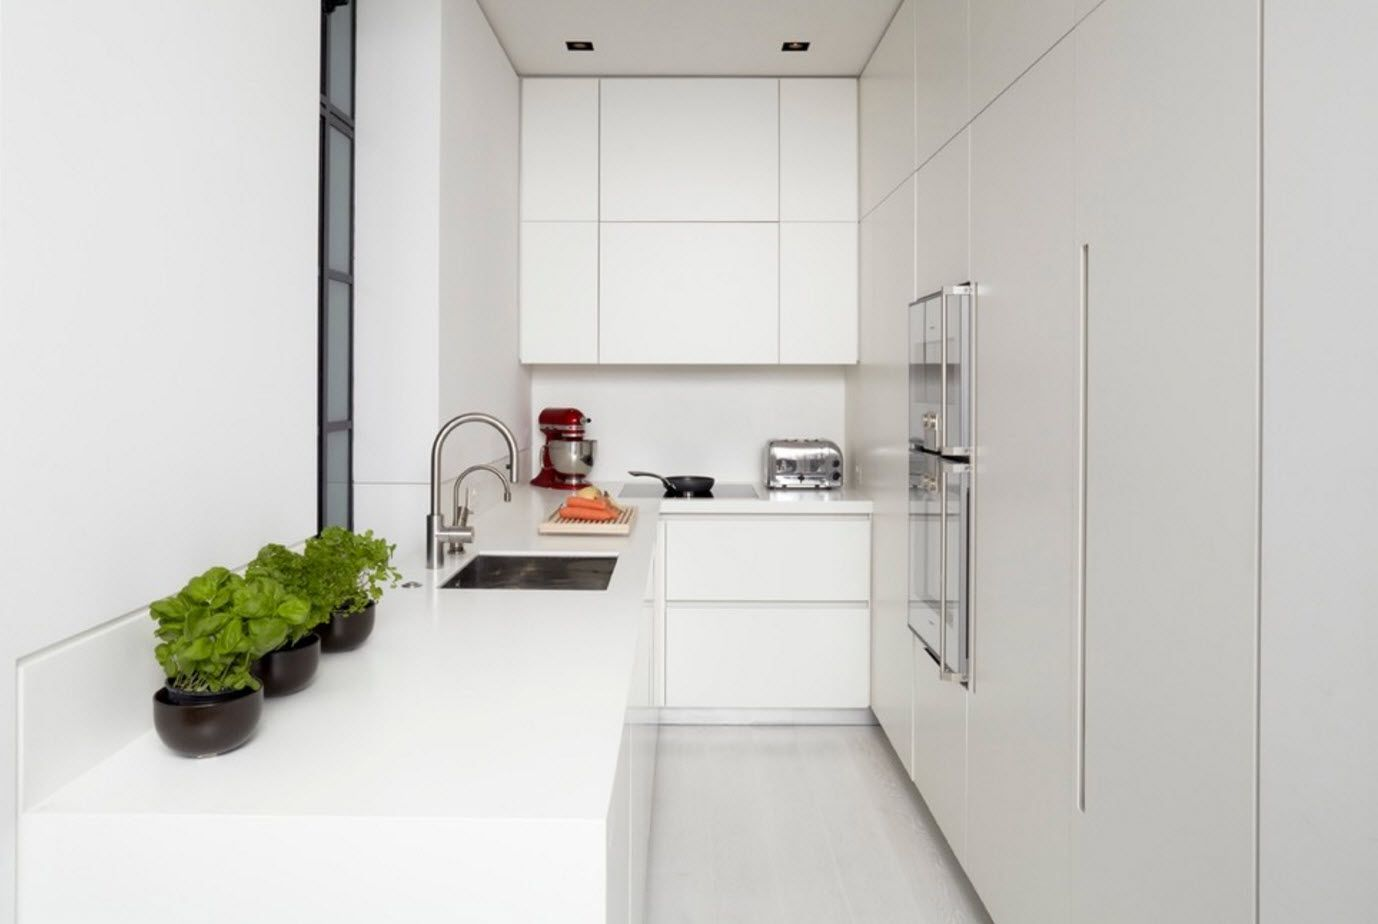 White plastic facades of the kitchen